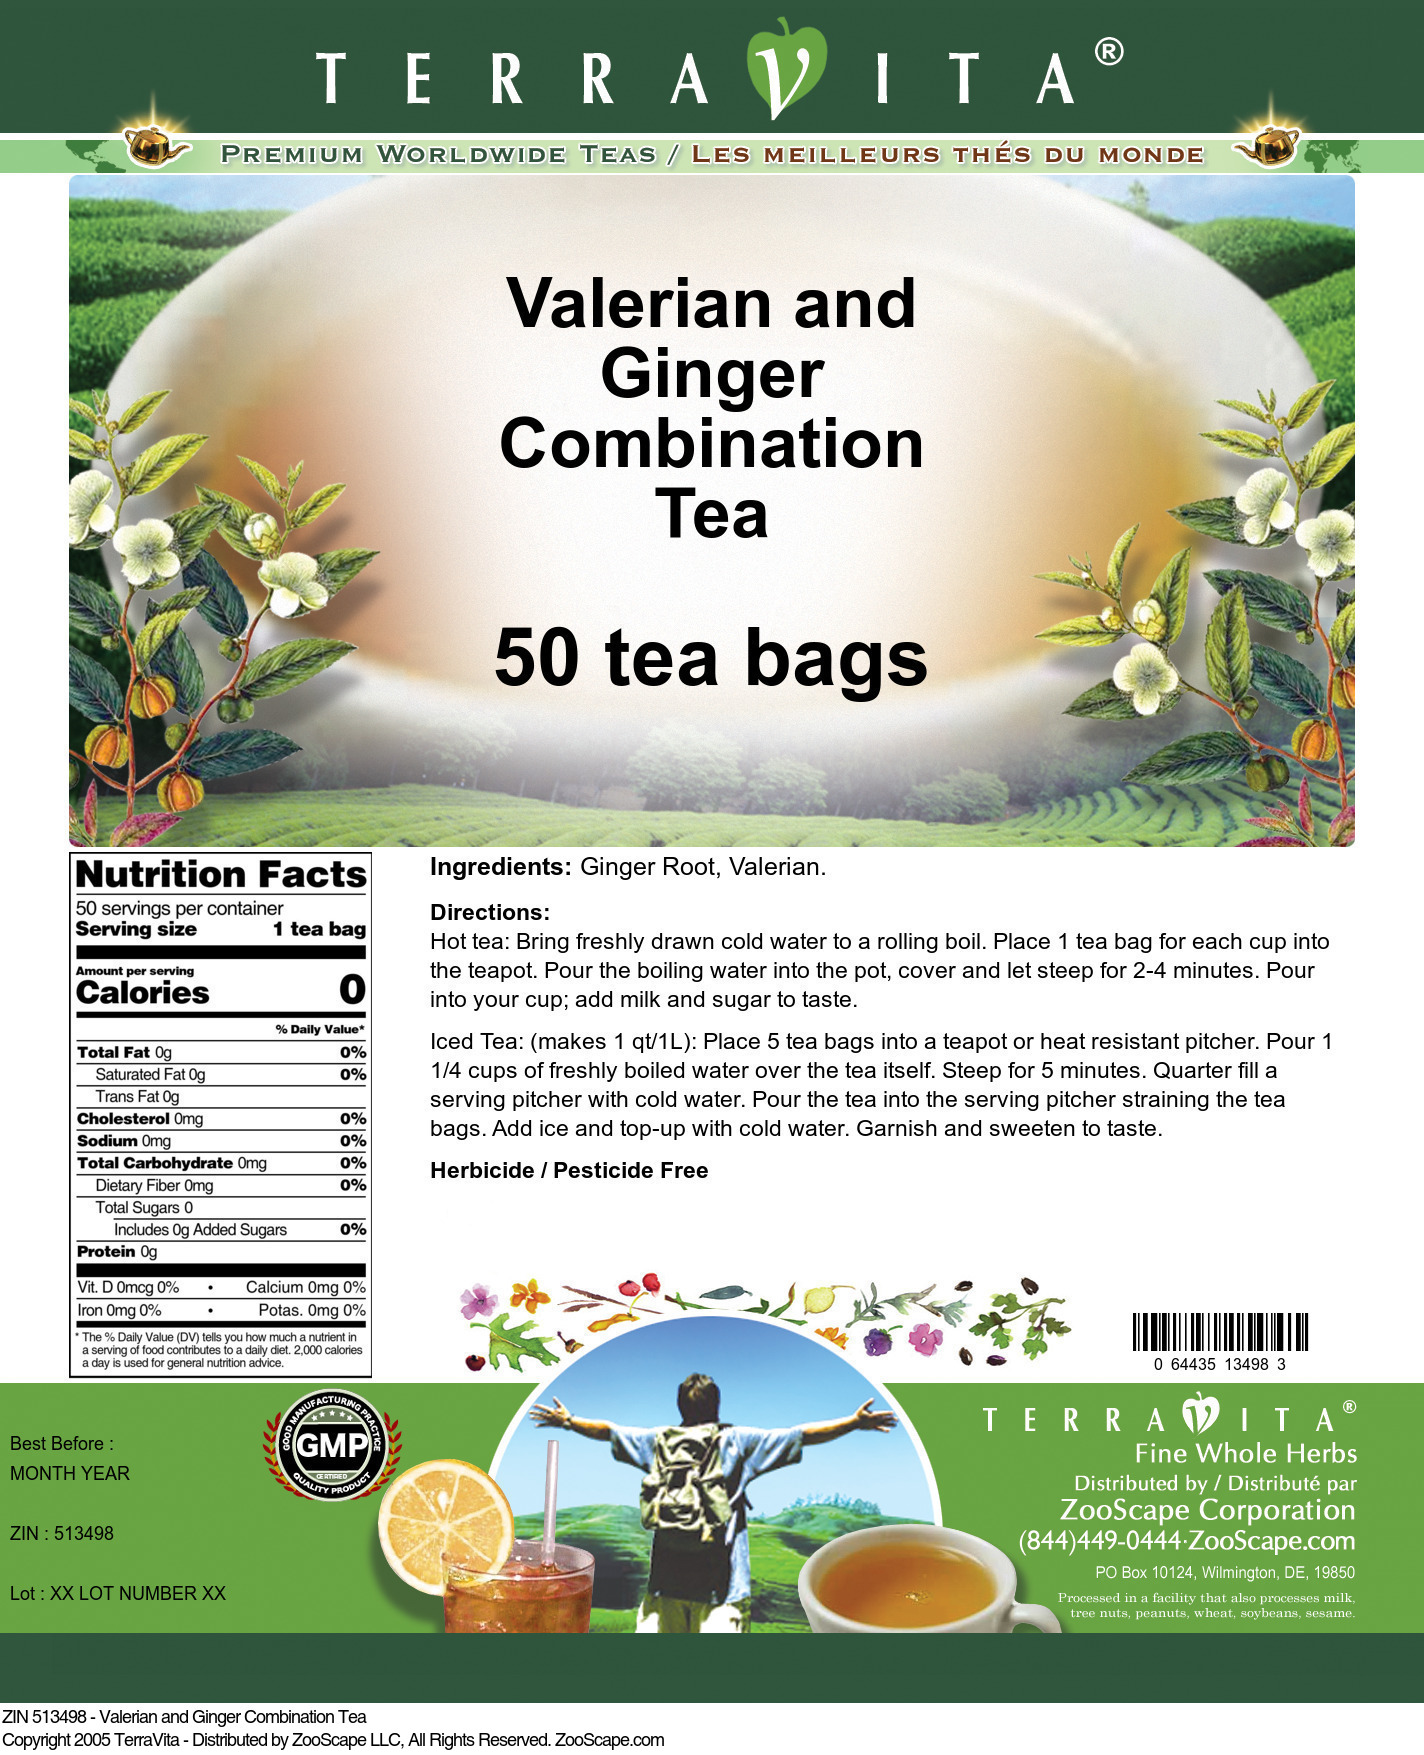 Valerian and Ginger Combination Tea